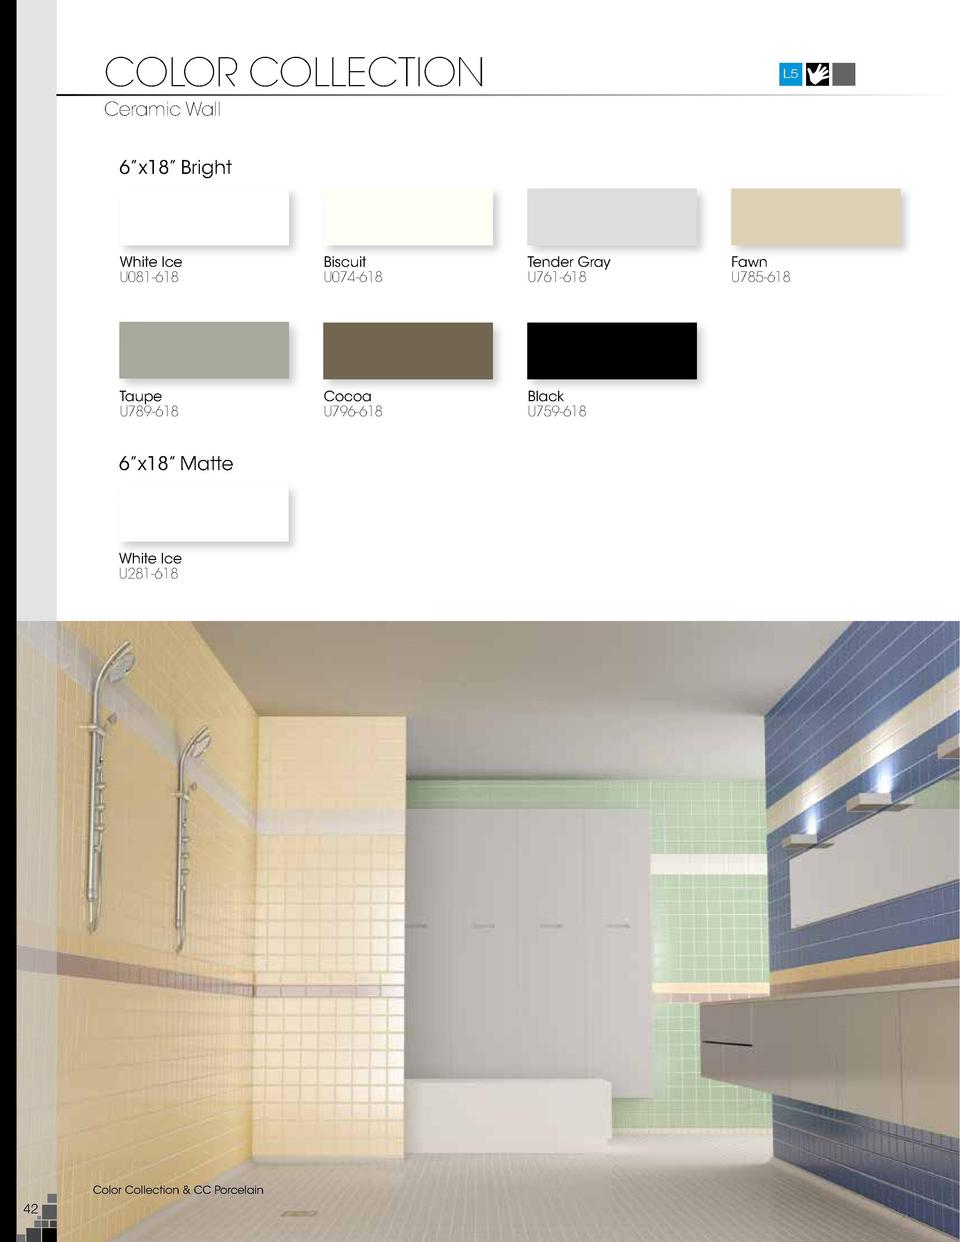 Roca tile 2015 catalog simplebooklet color collection l5 ceramic wall 6 x18 bright 41 4 x10 bright taupe u789 618 dailygadgetfo Images